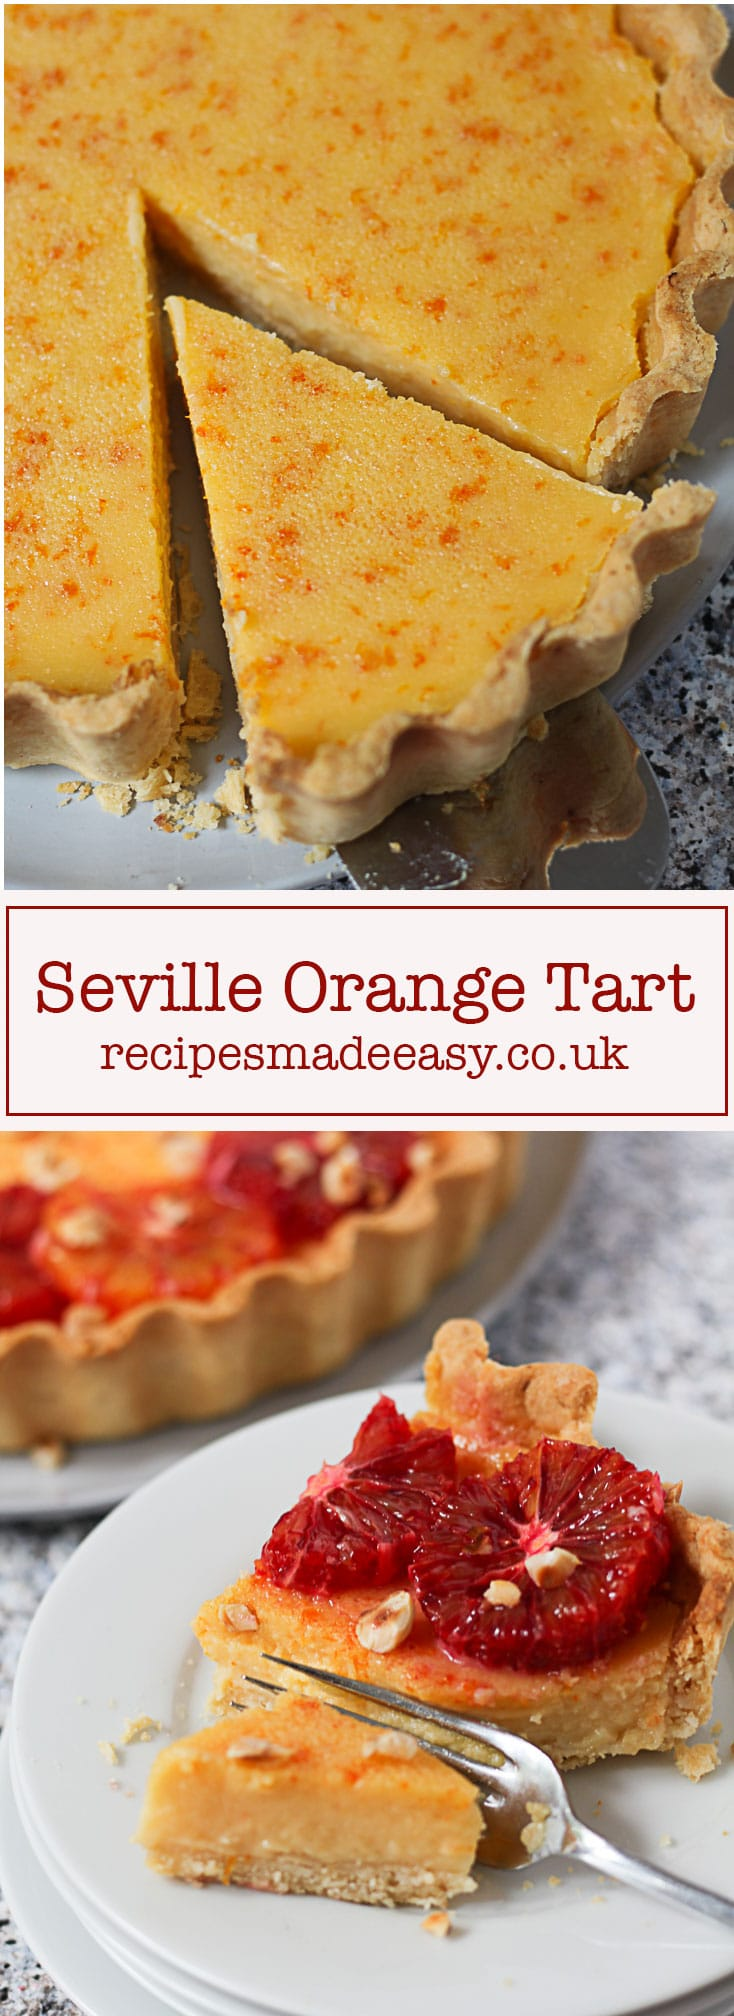 Recipes Made Easy Seville Orange Tart. A creamy orange filling, baked in a sweet hazelnut pastry case and decorated with blood oranges and hazelnuts.